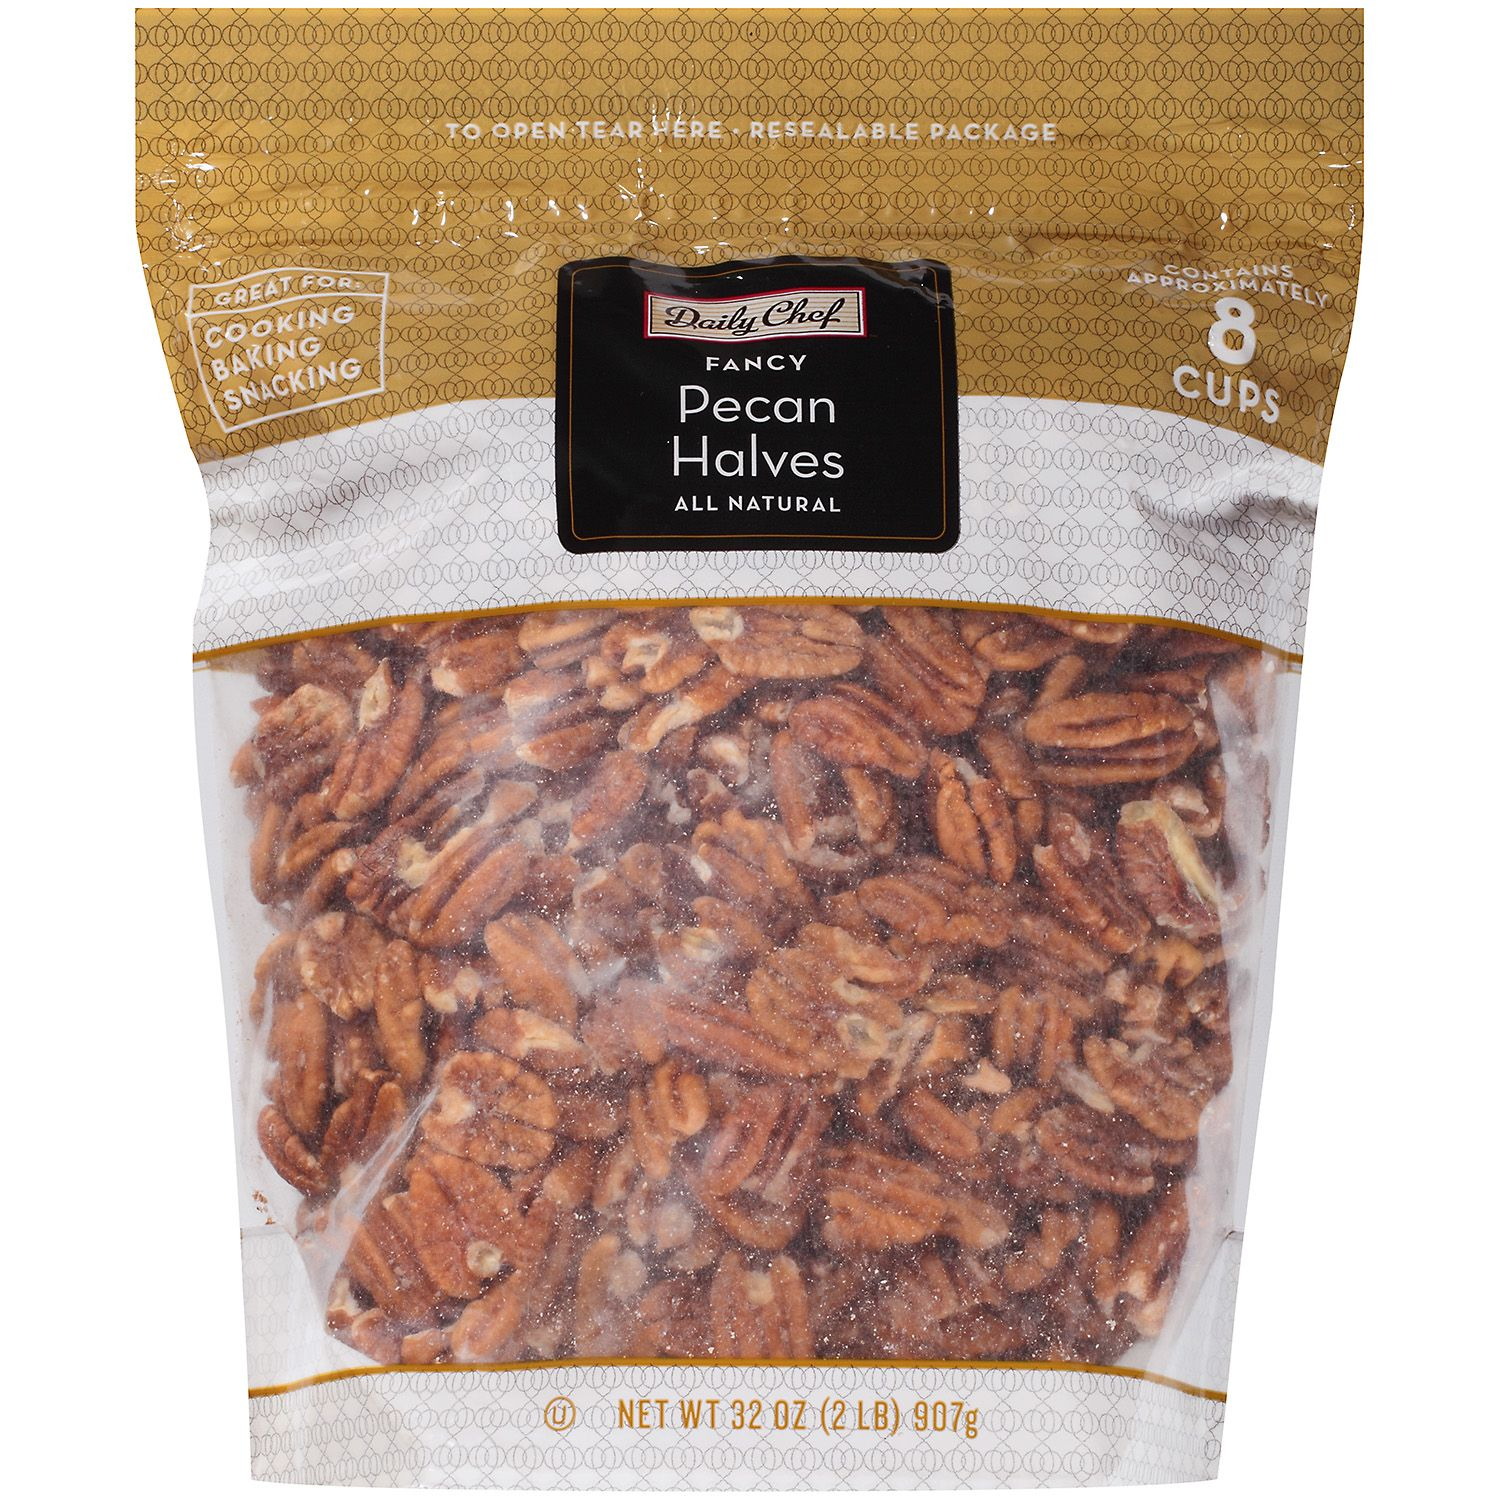 Daily Chef Fancy Pecan Halves 2 lbs. by SAM'S WHOLESALE CLUB